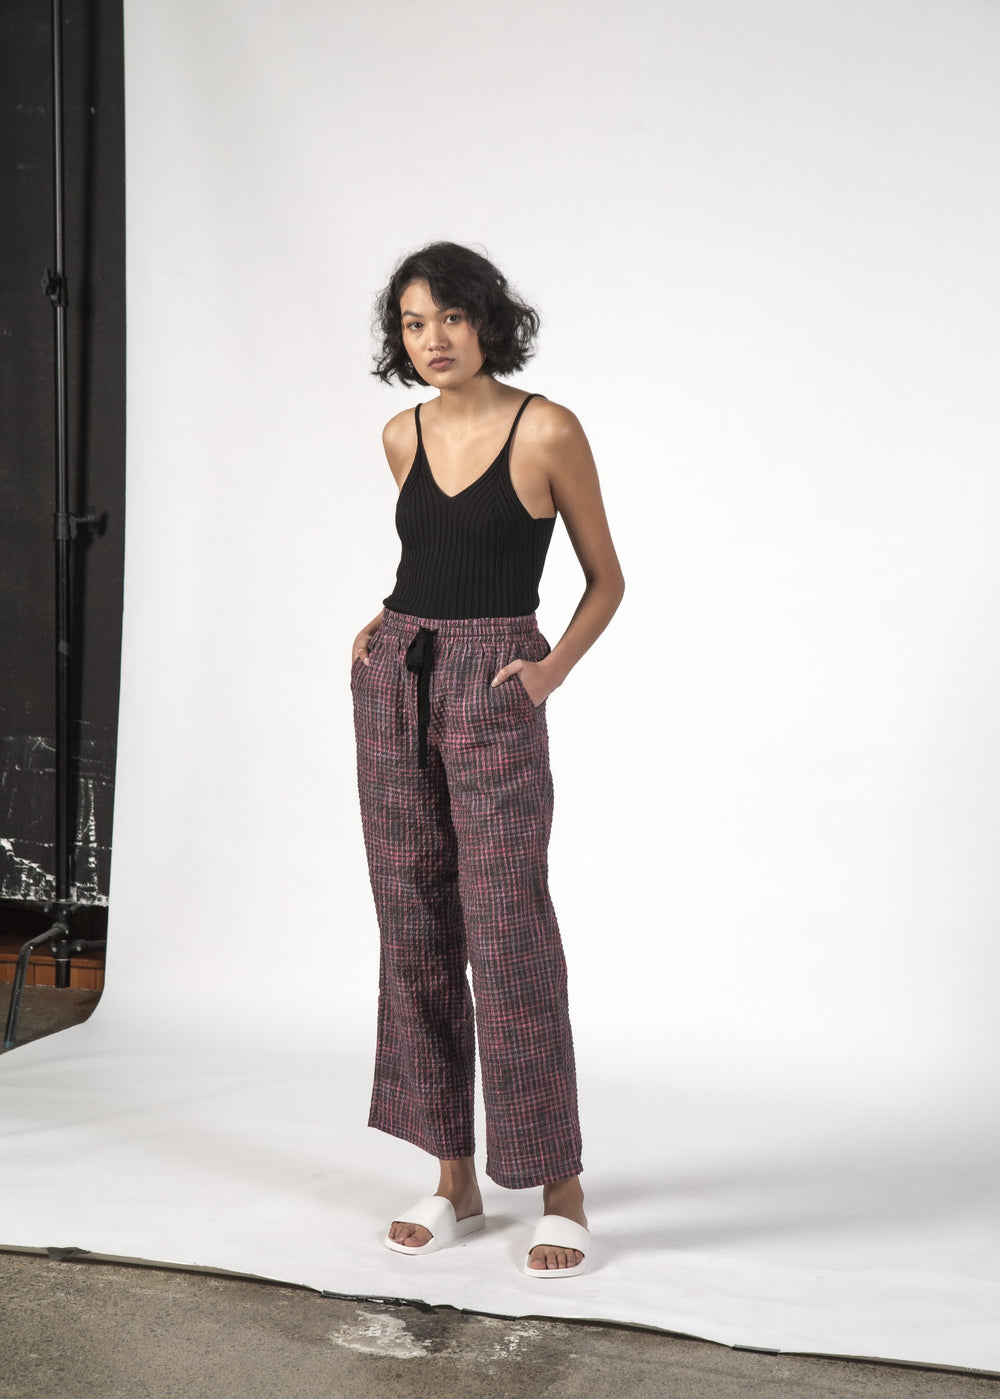 BEACH PANTS - Charcoal Check